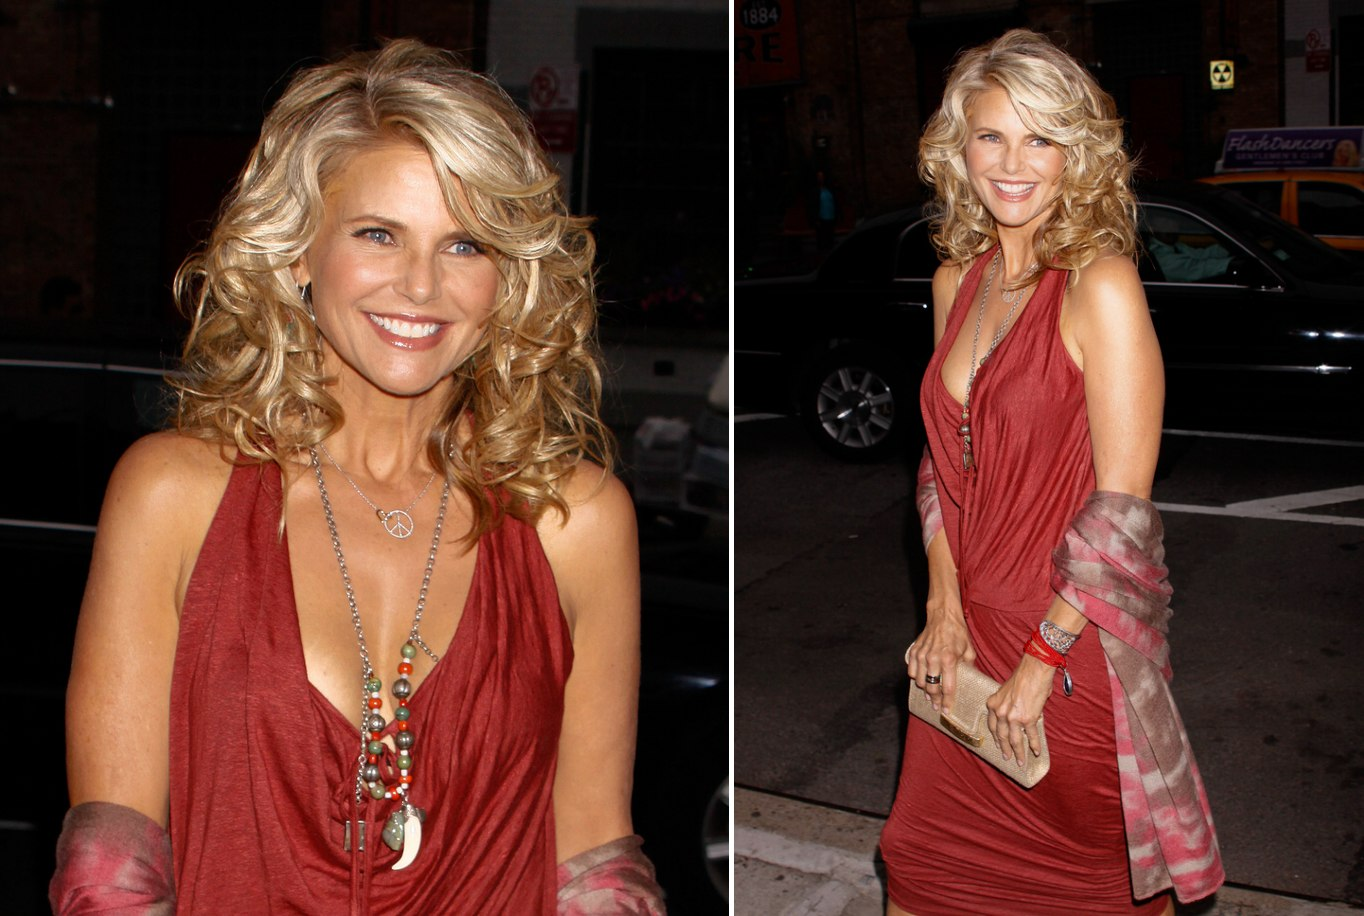 christie brinkley rachel stevens christie brinkley 06 17 2009 previous